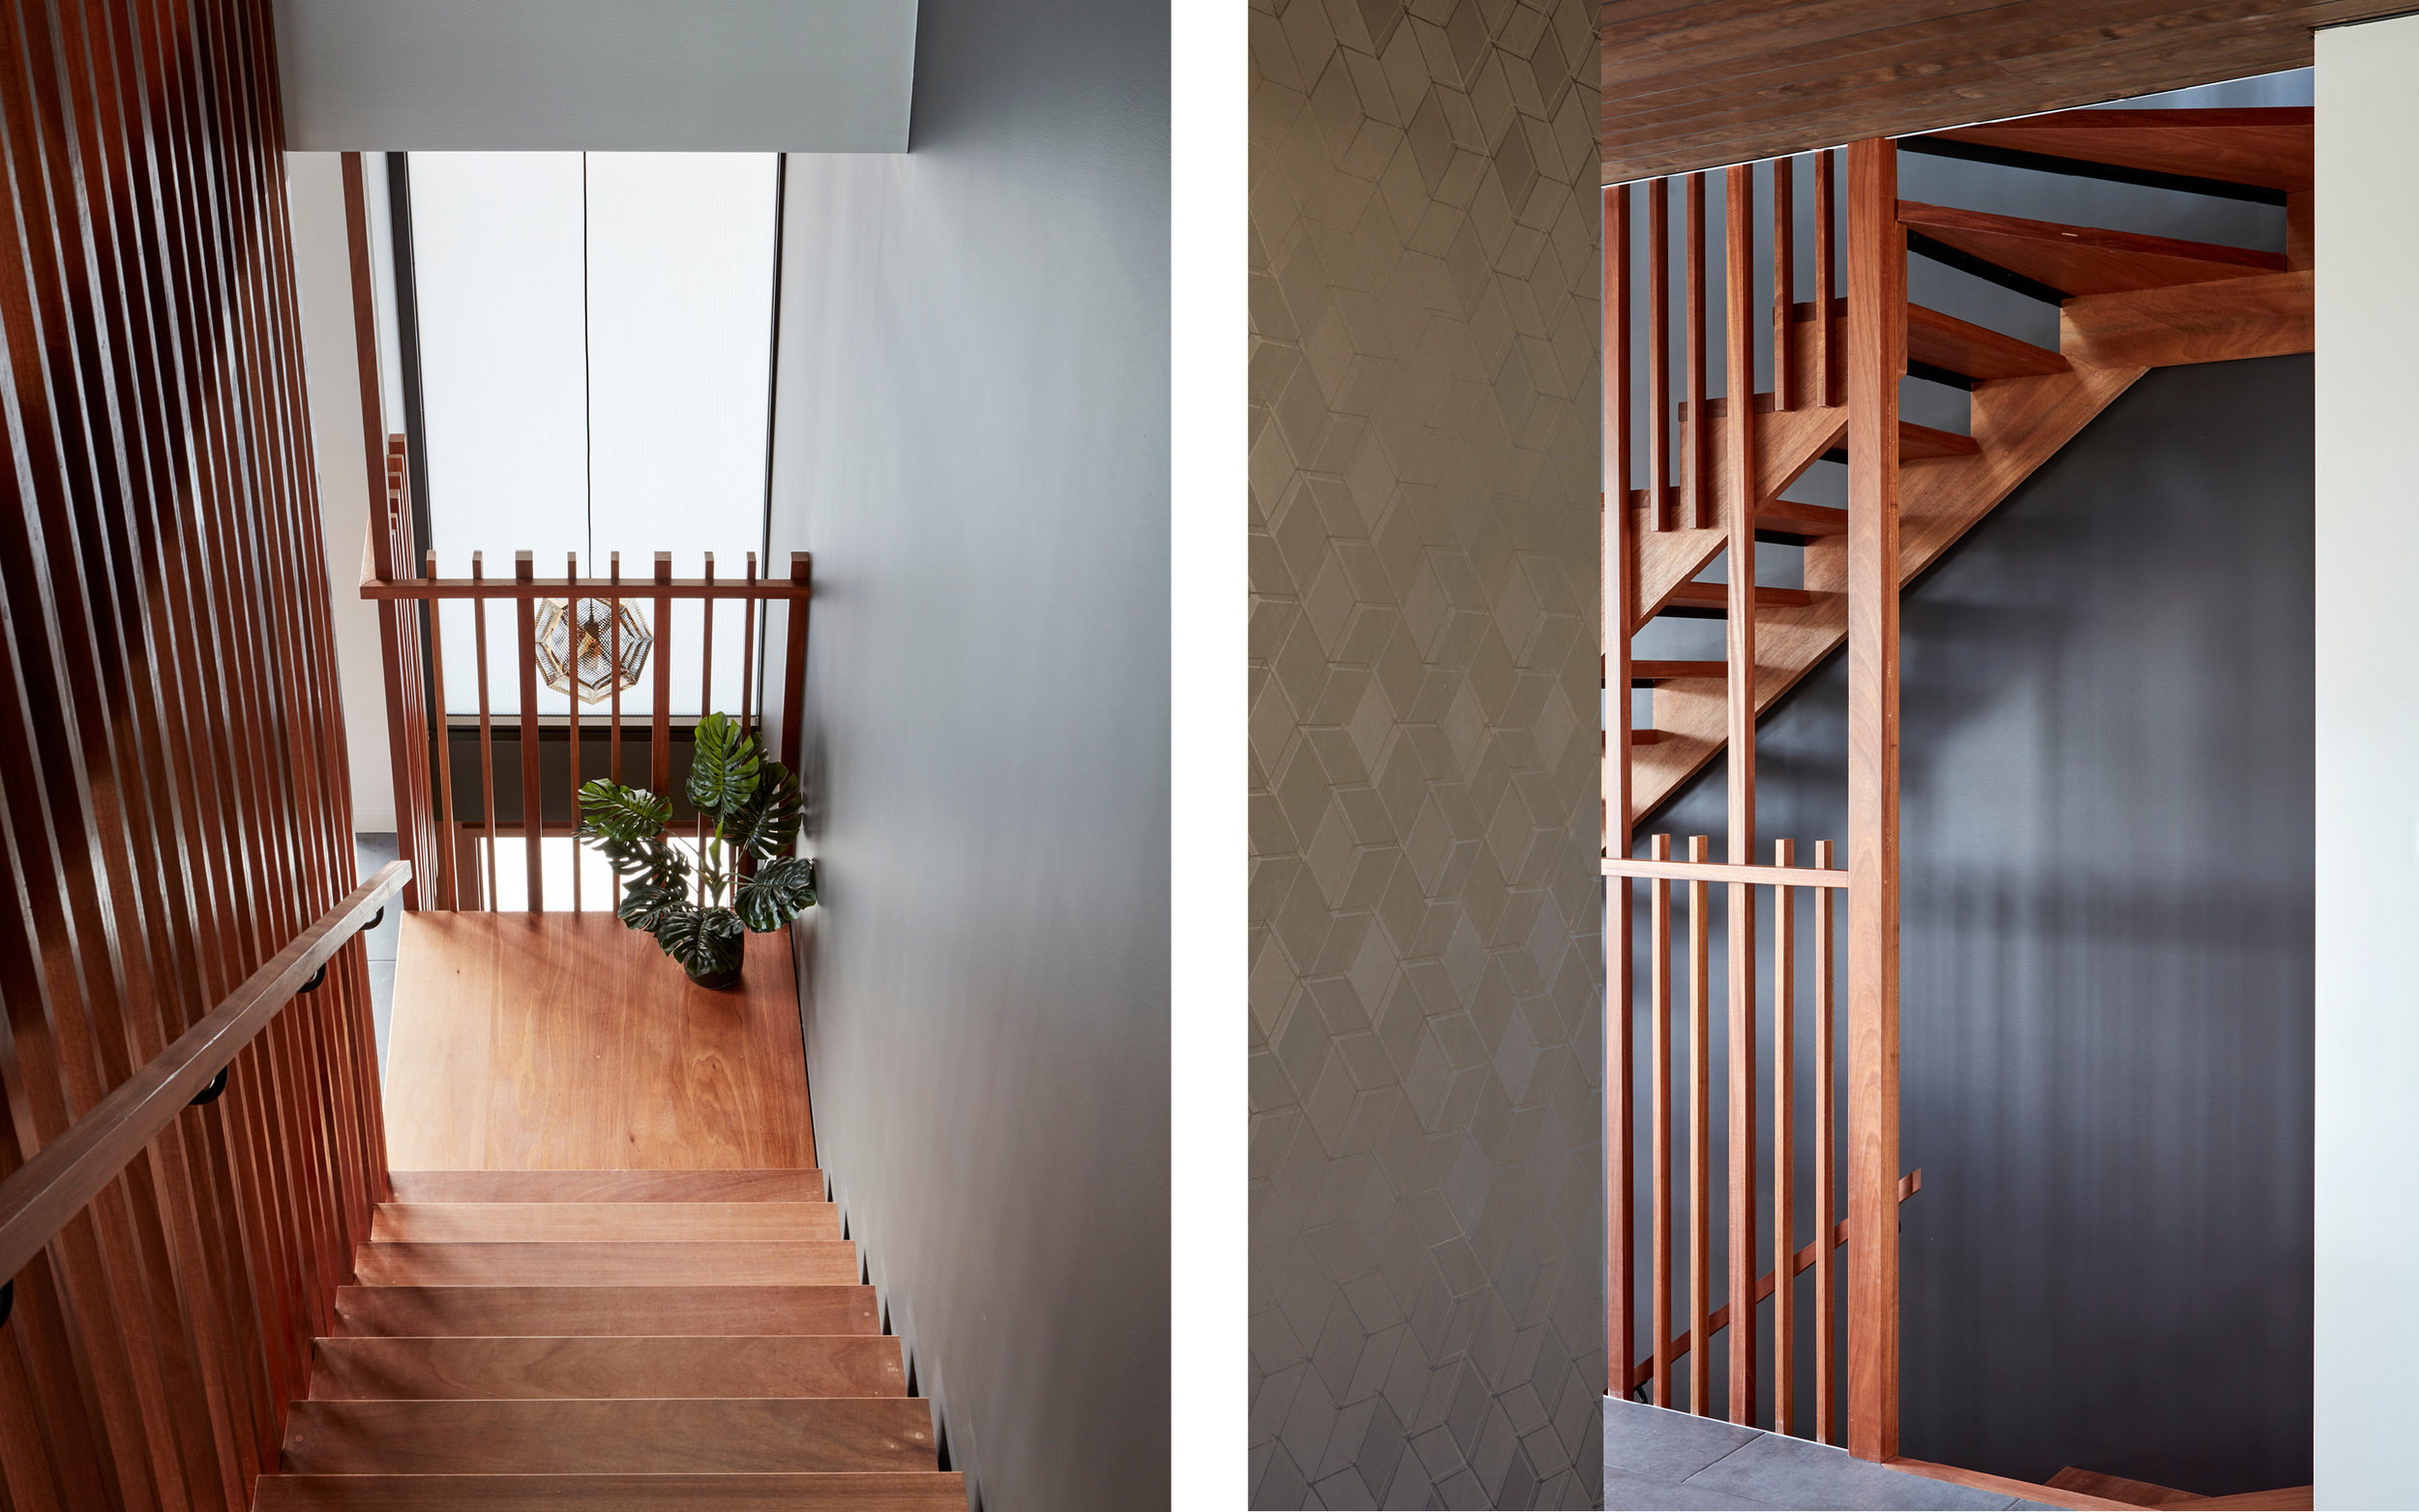 A beautiful timber staircase with a skylight creates different patterns of light of shade throughout the day.